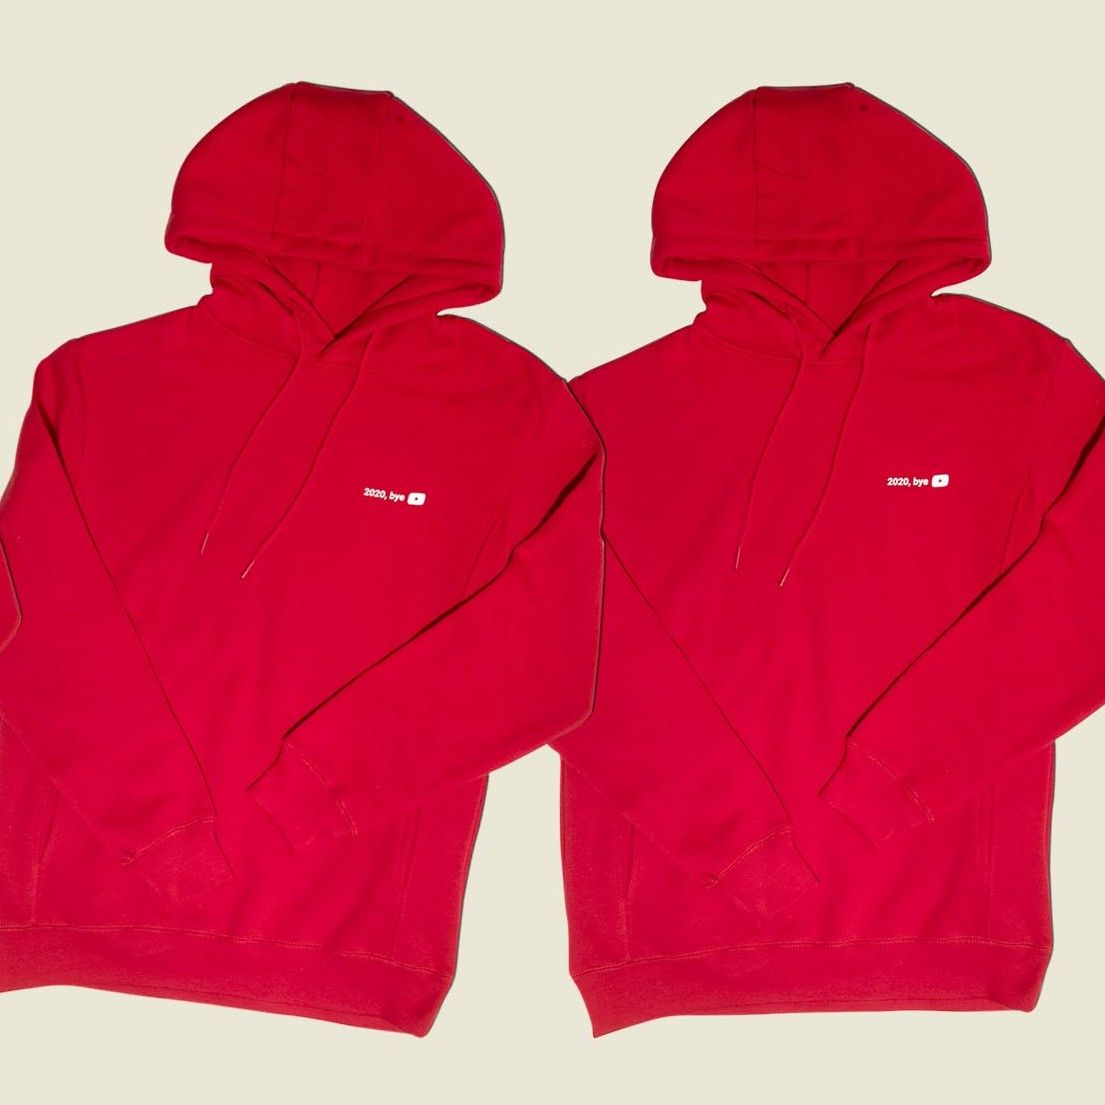 Set of red pullovers